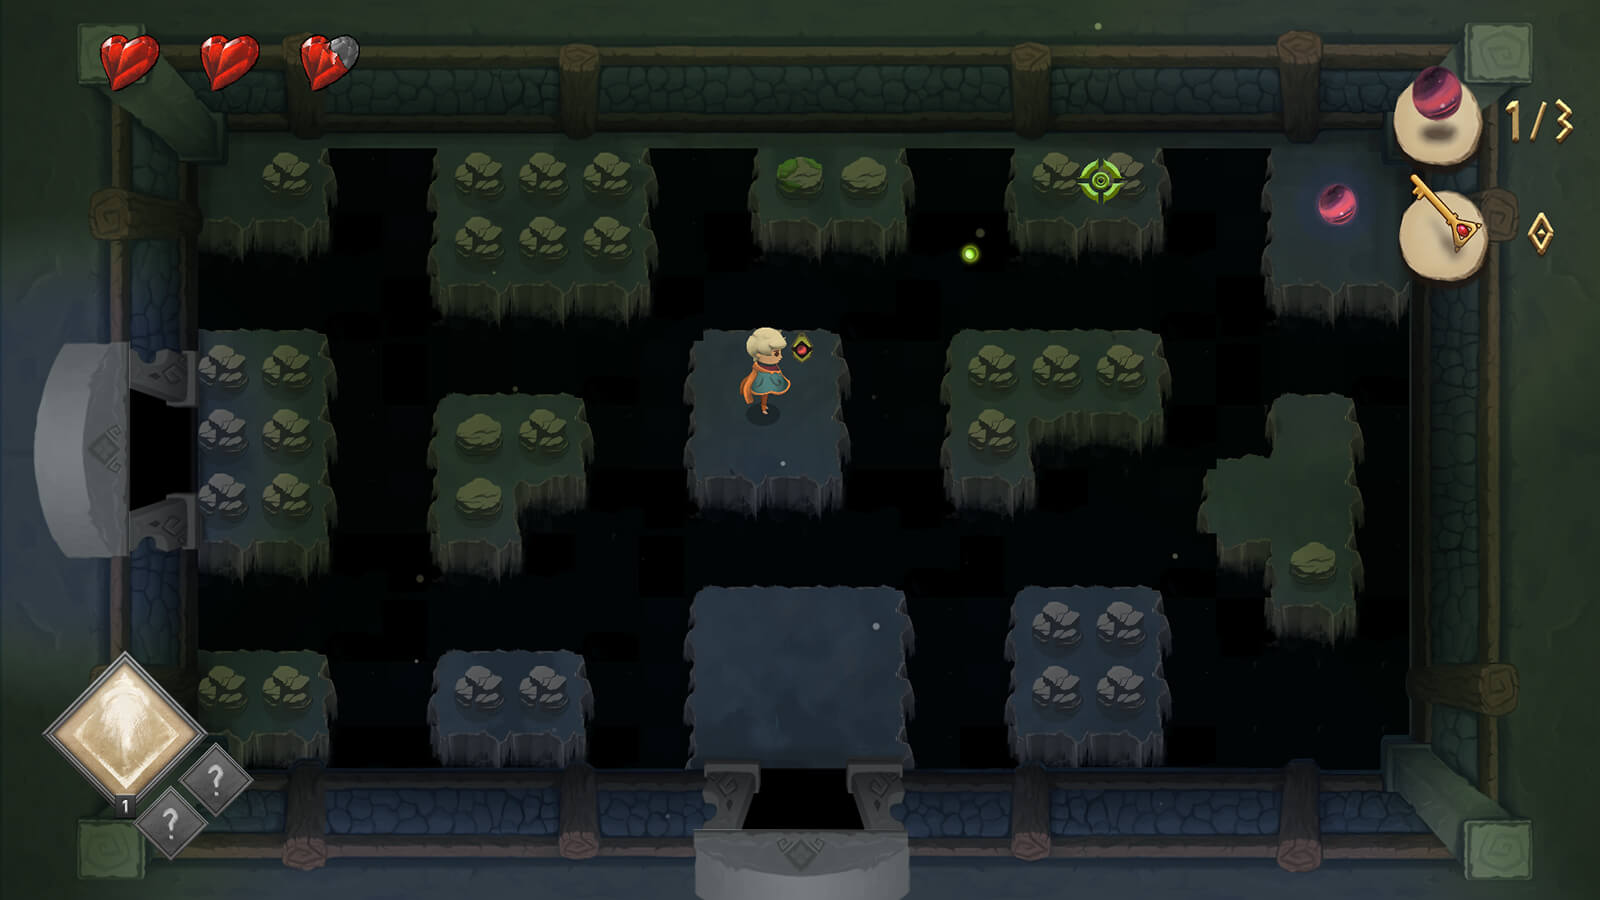 A young robed adventurer stands in a dungeon room full of floating platforms covered in rocks.